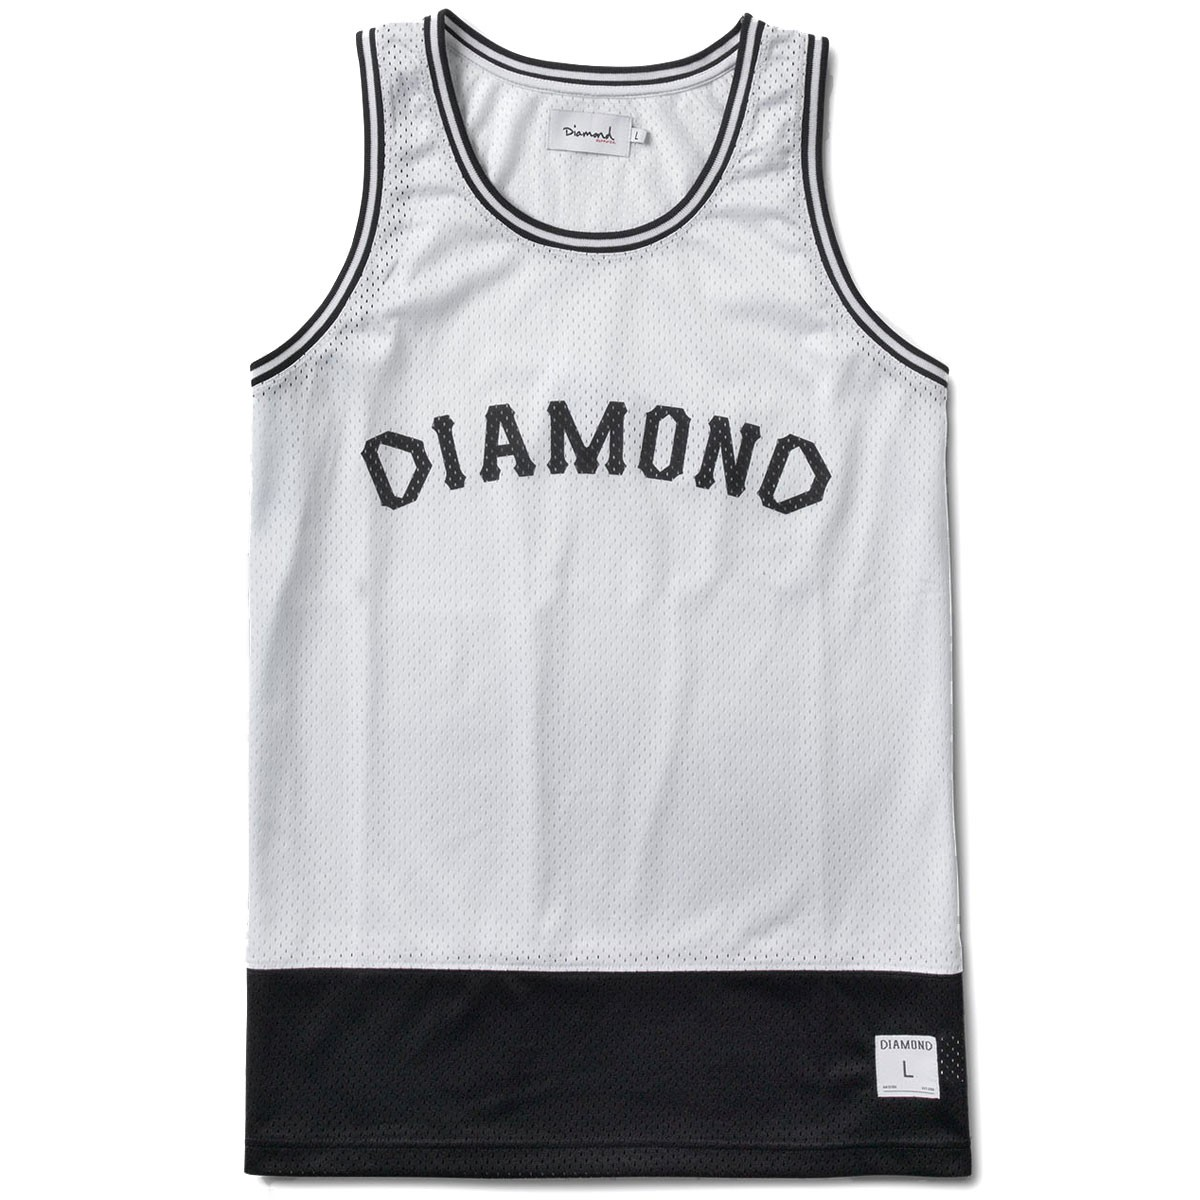 6514afb92afe diamond-supply-co-diamond-arch-basketball-jersey-white 3.1507545097.jpg